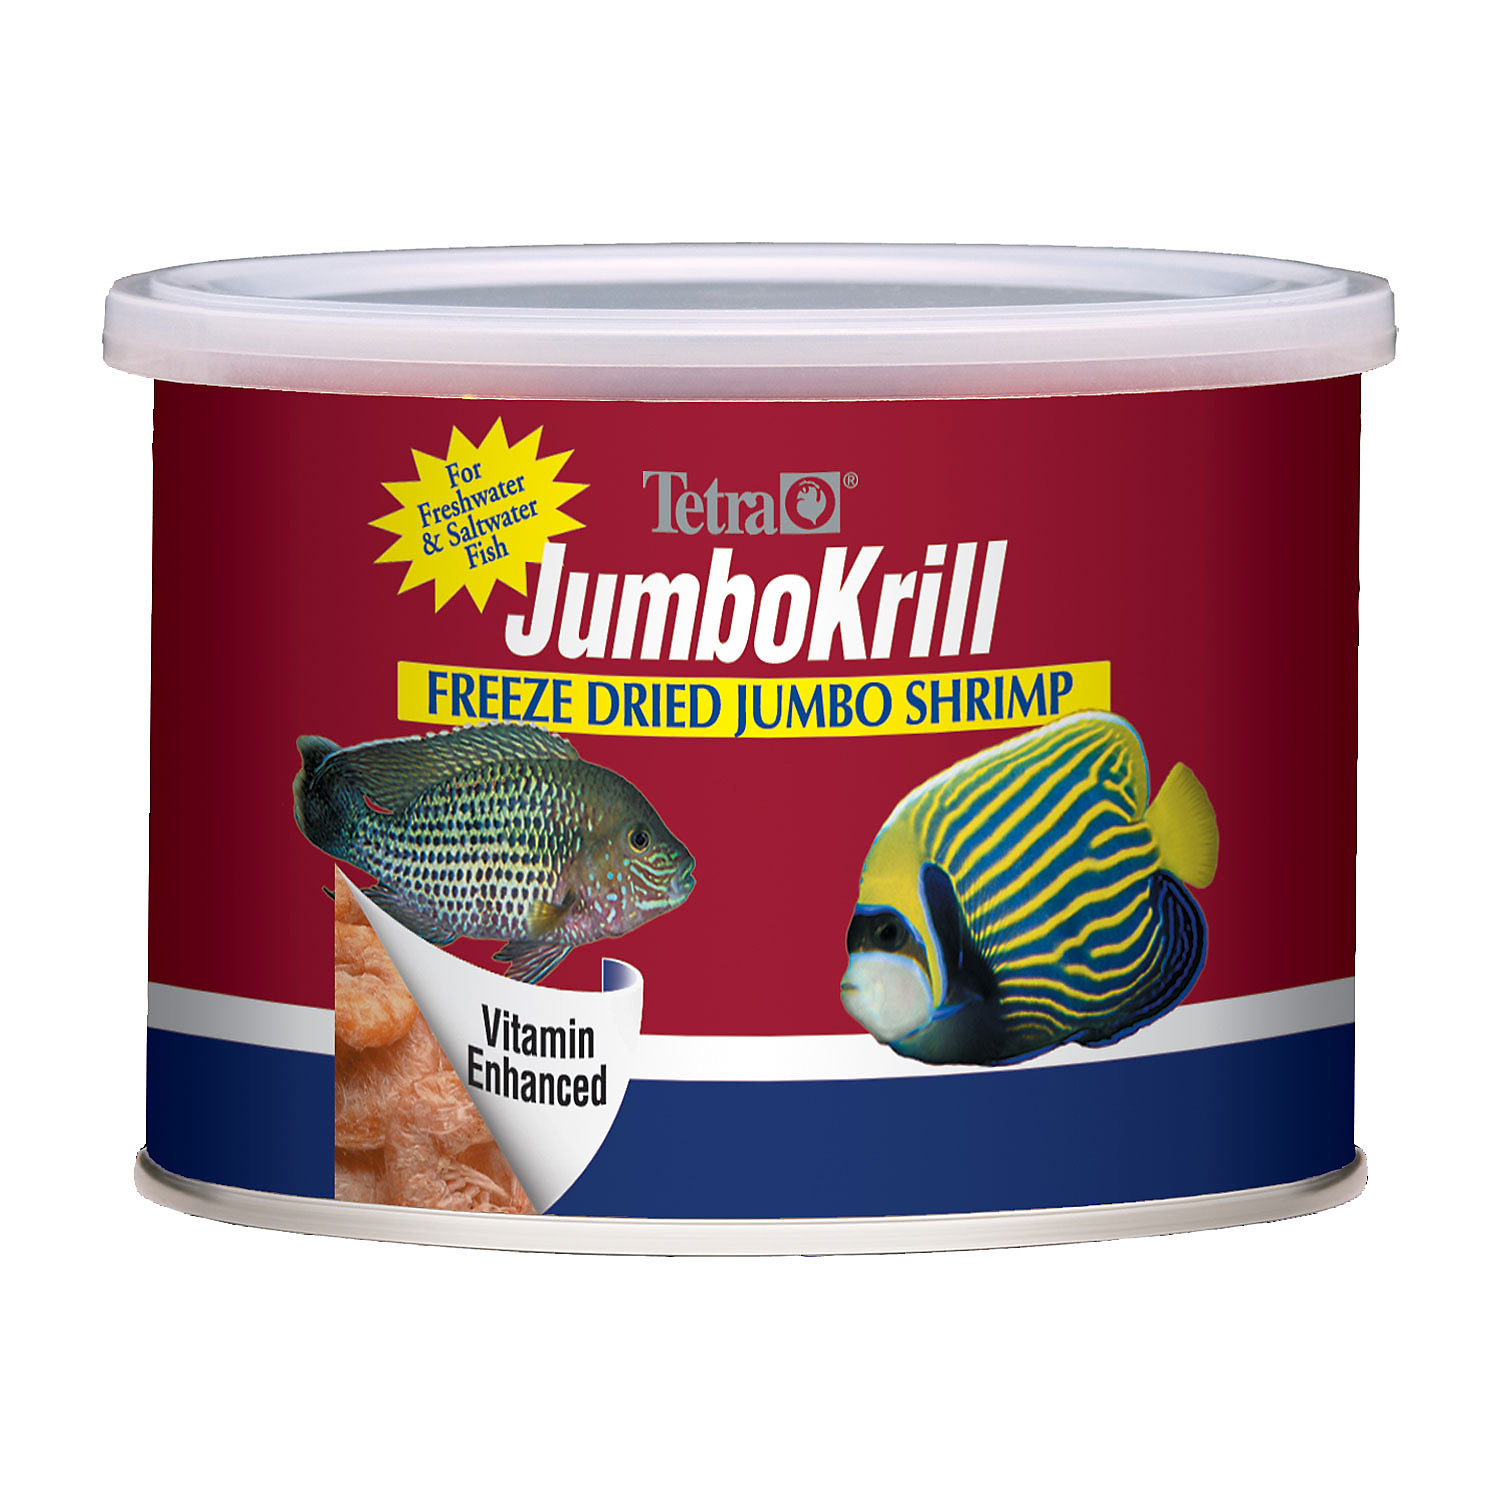 Tetra Jumbo Krill Shrimp Freeze Dried Treat